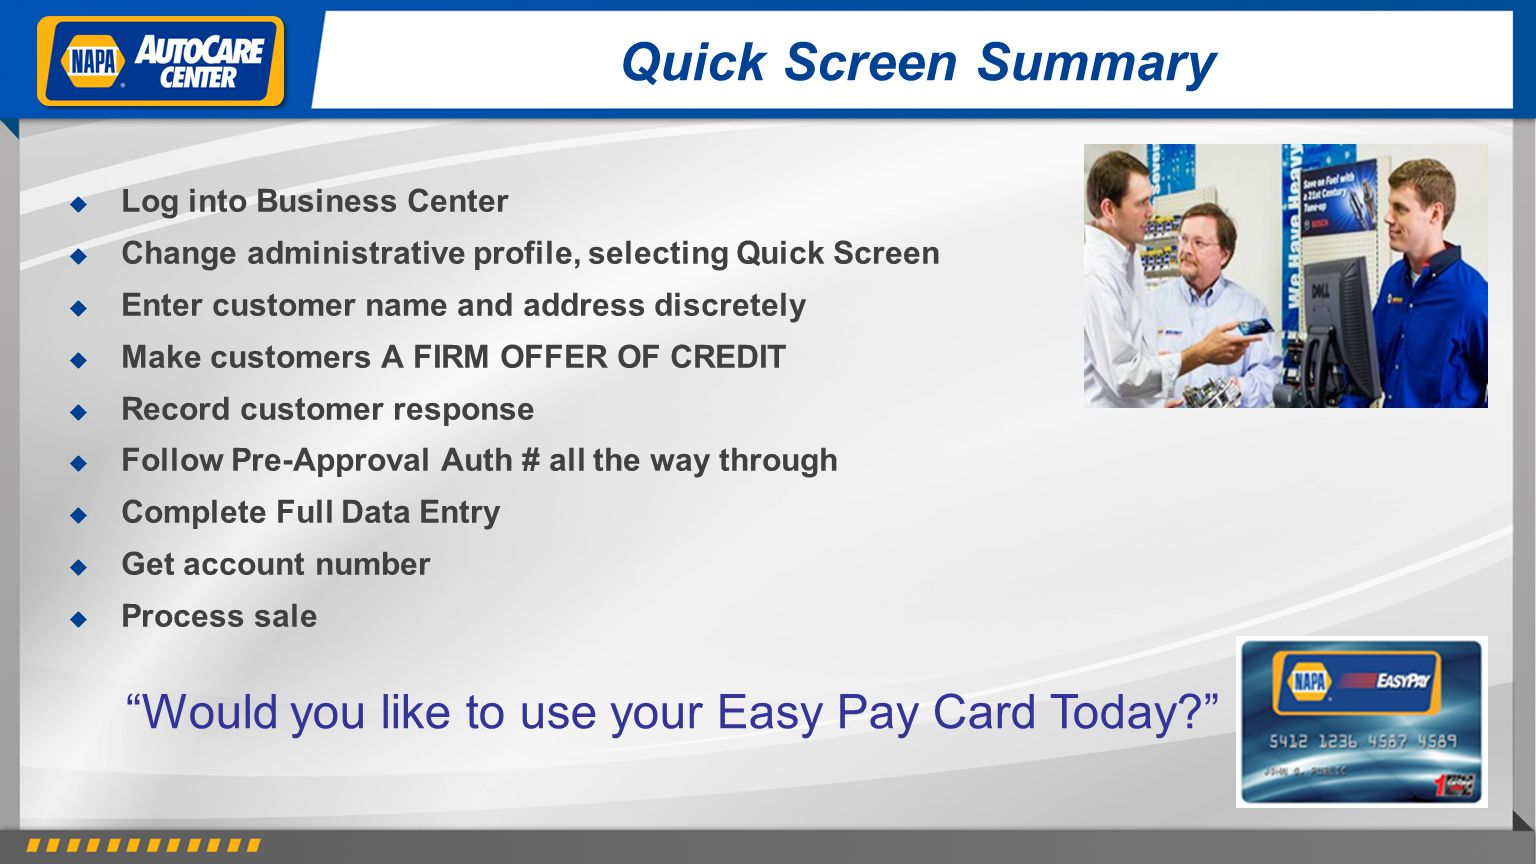 Would you like to use your Easy Pay Card Today